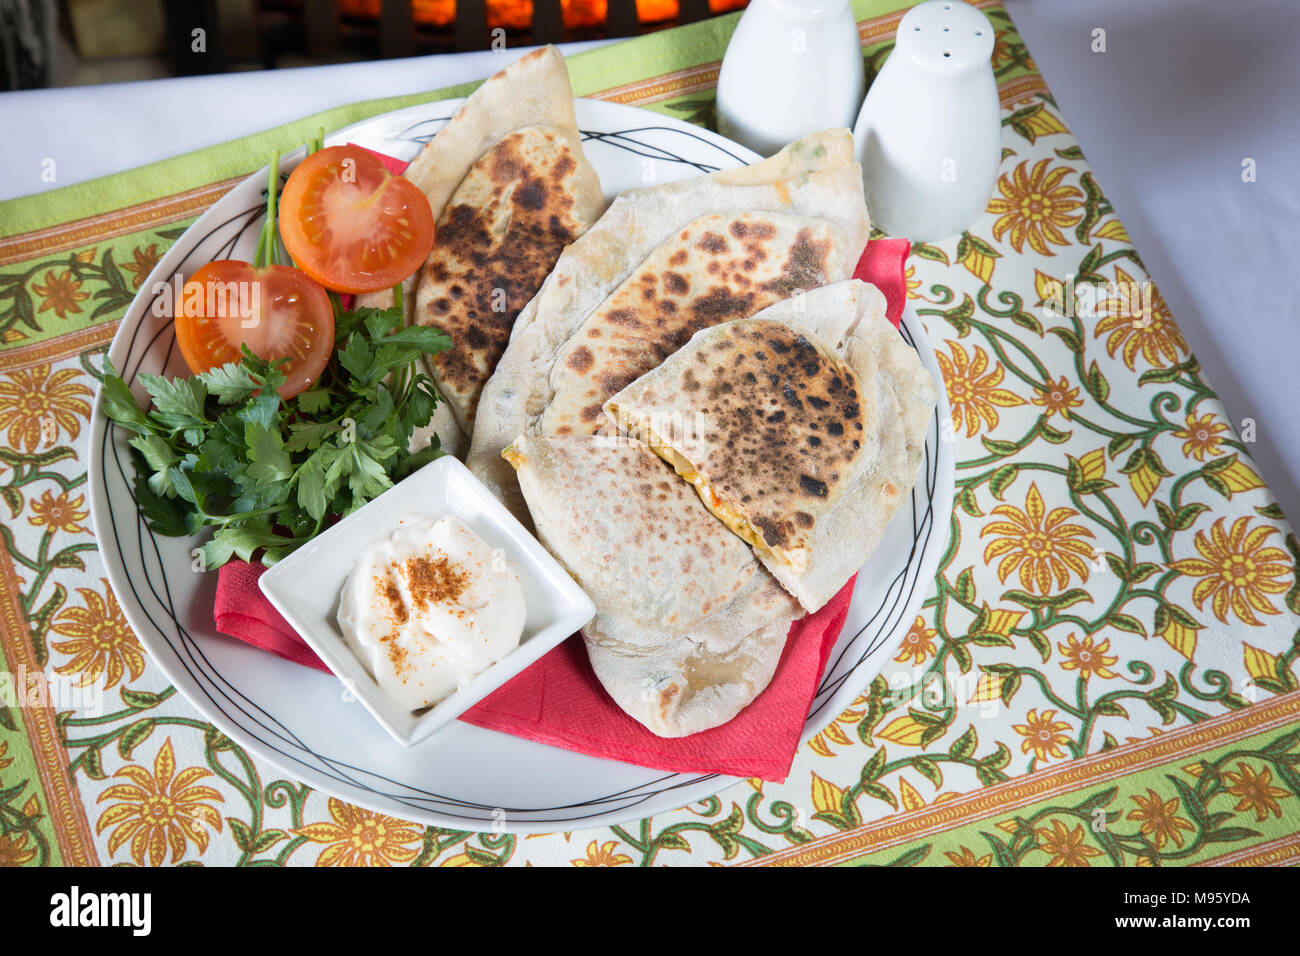 Traditional Azerbaijani pie/Qutab with a cheese and herb filling served with a salad and sour cream with paprika dip - Stock Image